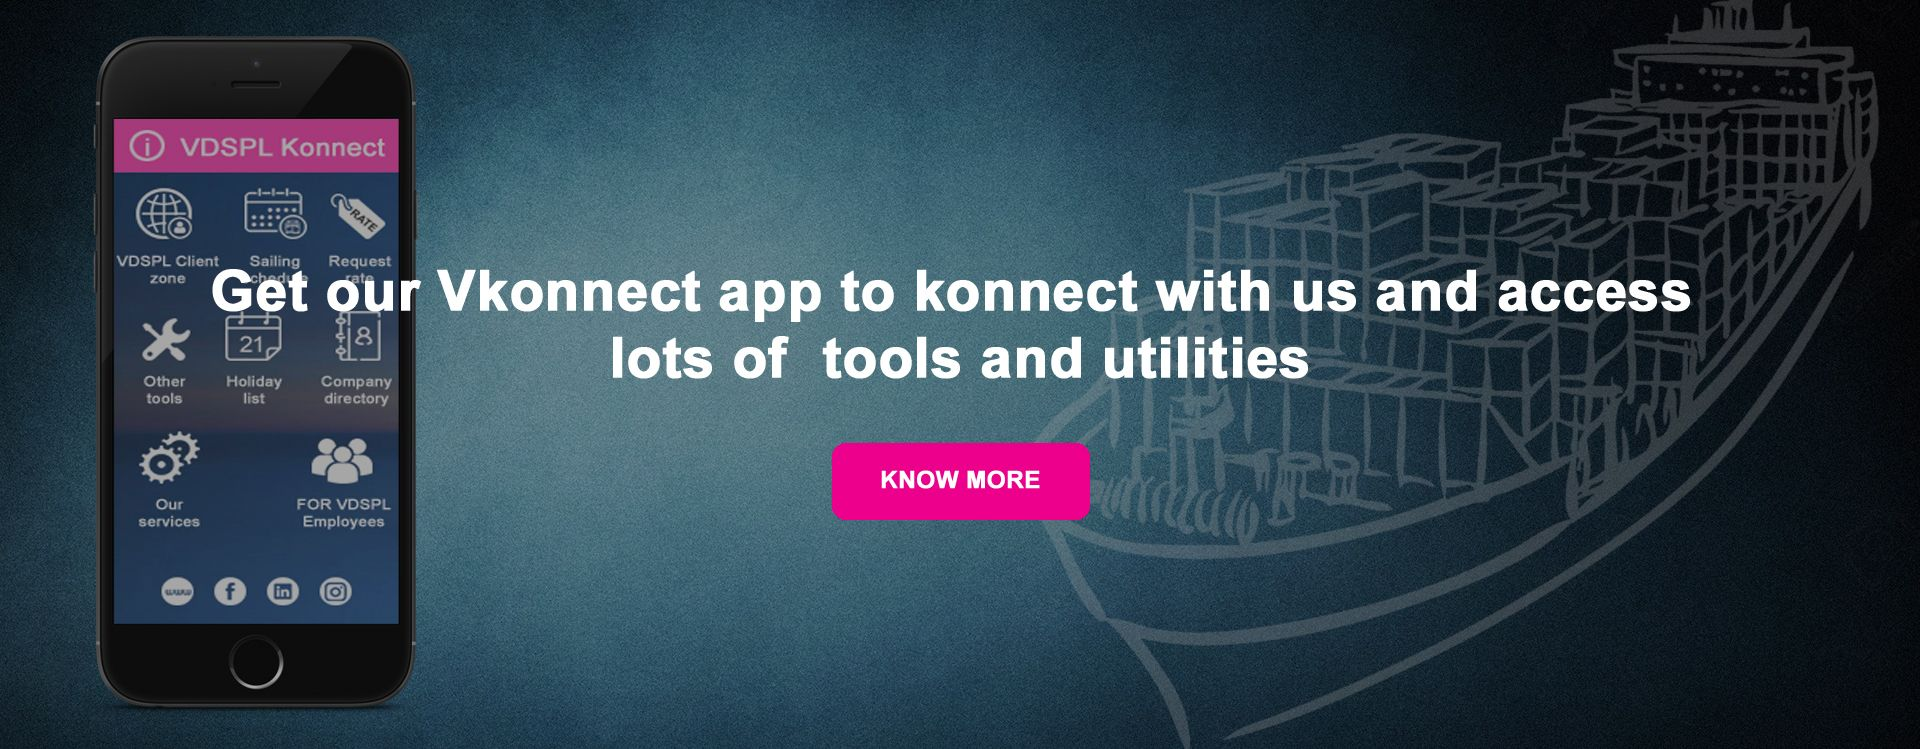 Get our Vkonnect app to konnect with us and access lots of  tools and utilities